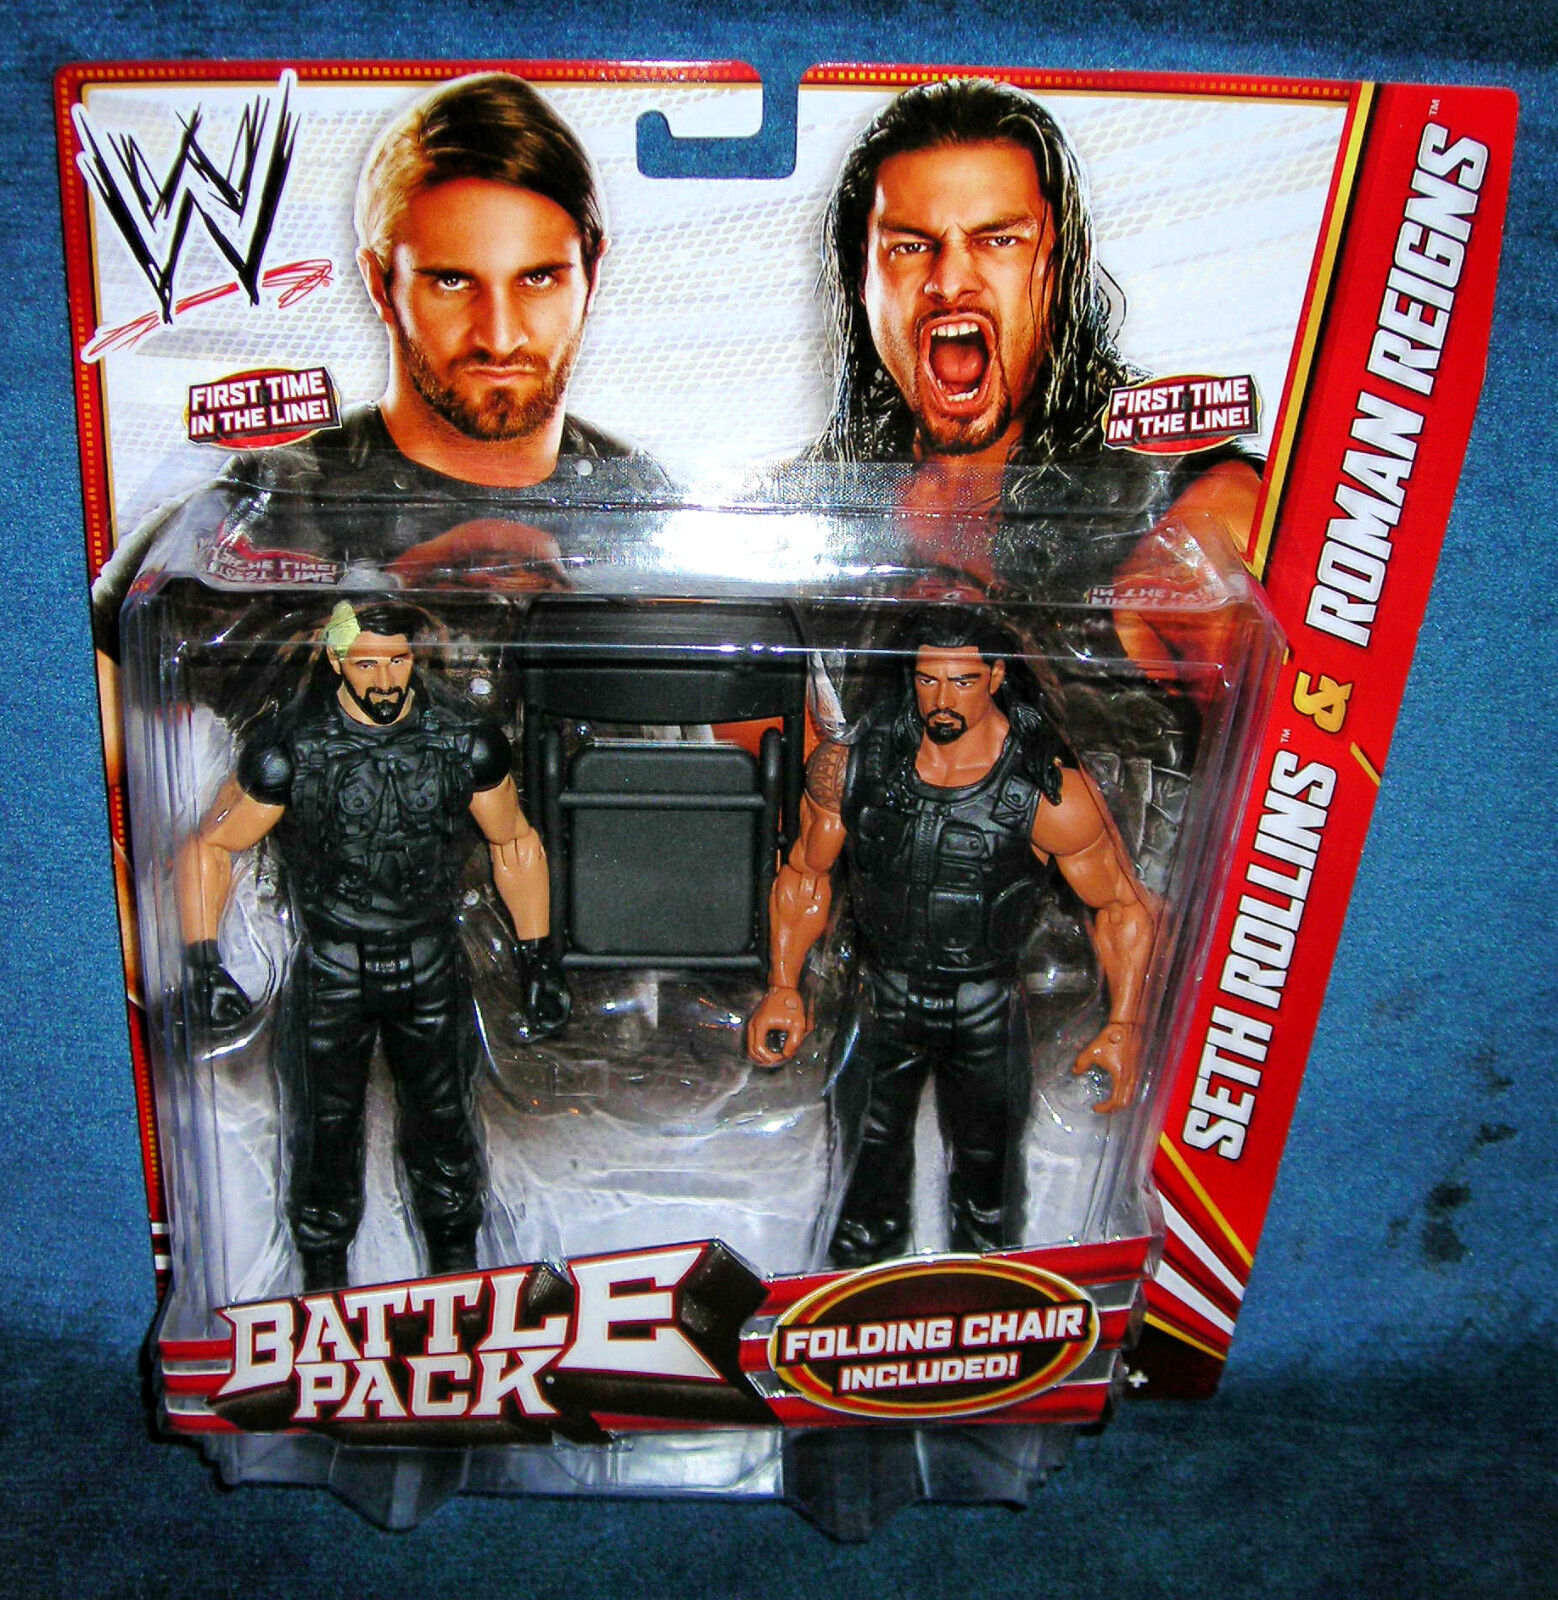 WWE SETH ROLLINS ROMAN REIGNS SHIELD TAG TEAM FIRST WWF WCW ECW RAW WRESTLEMANIA